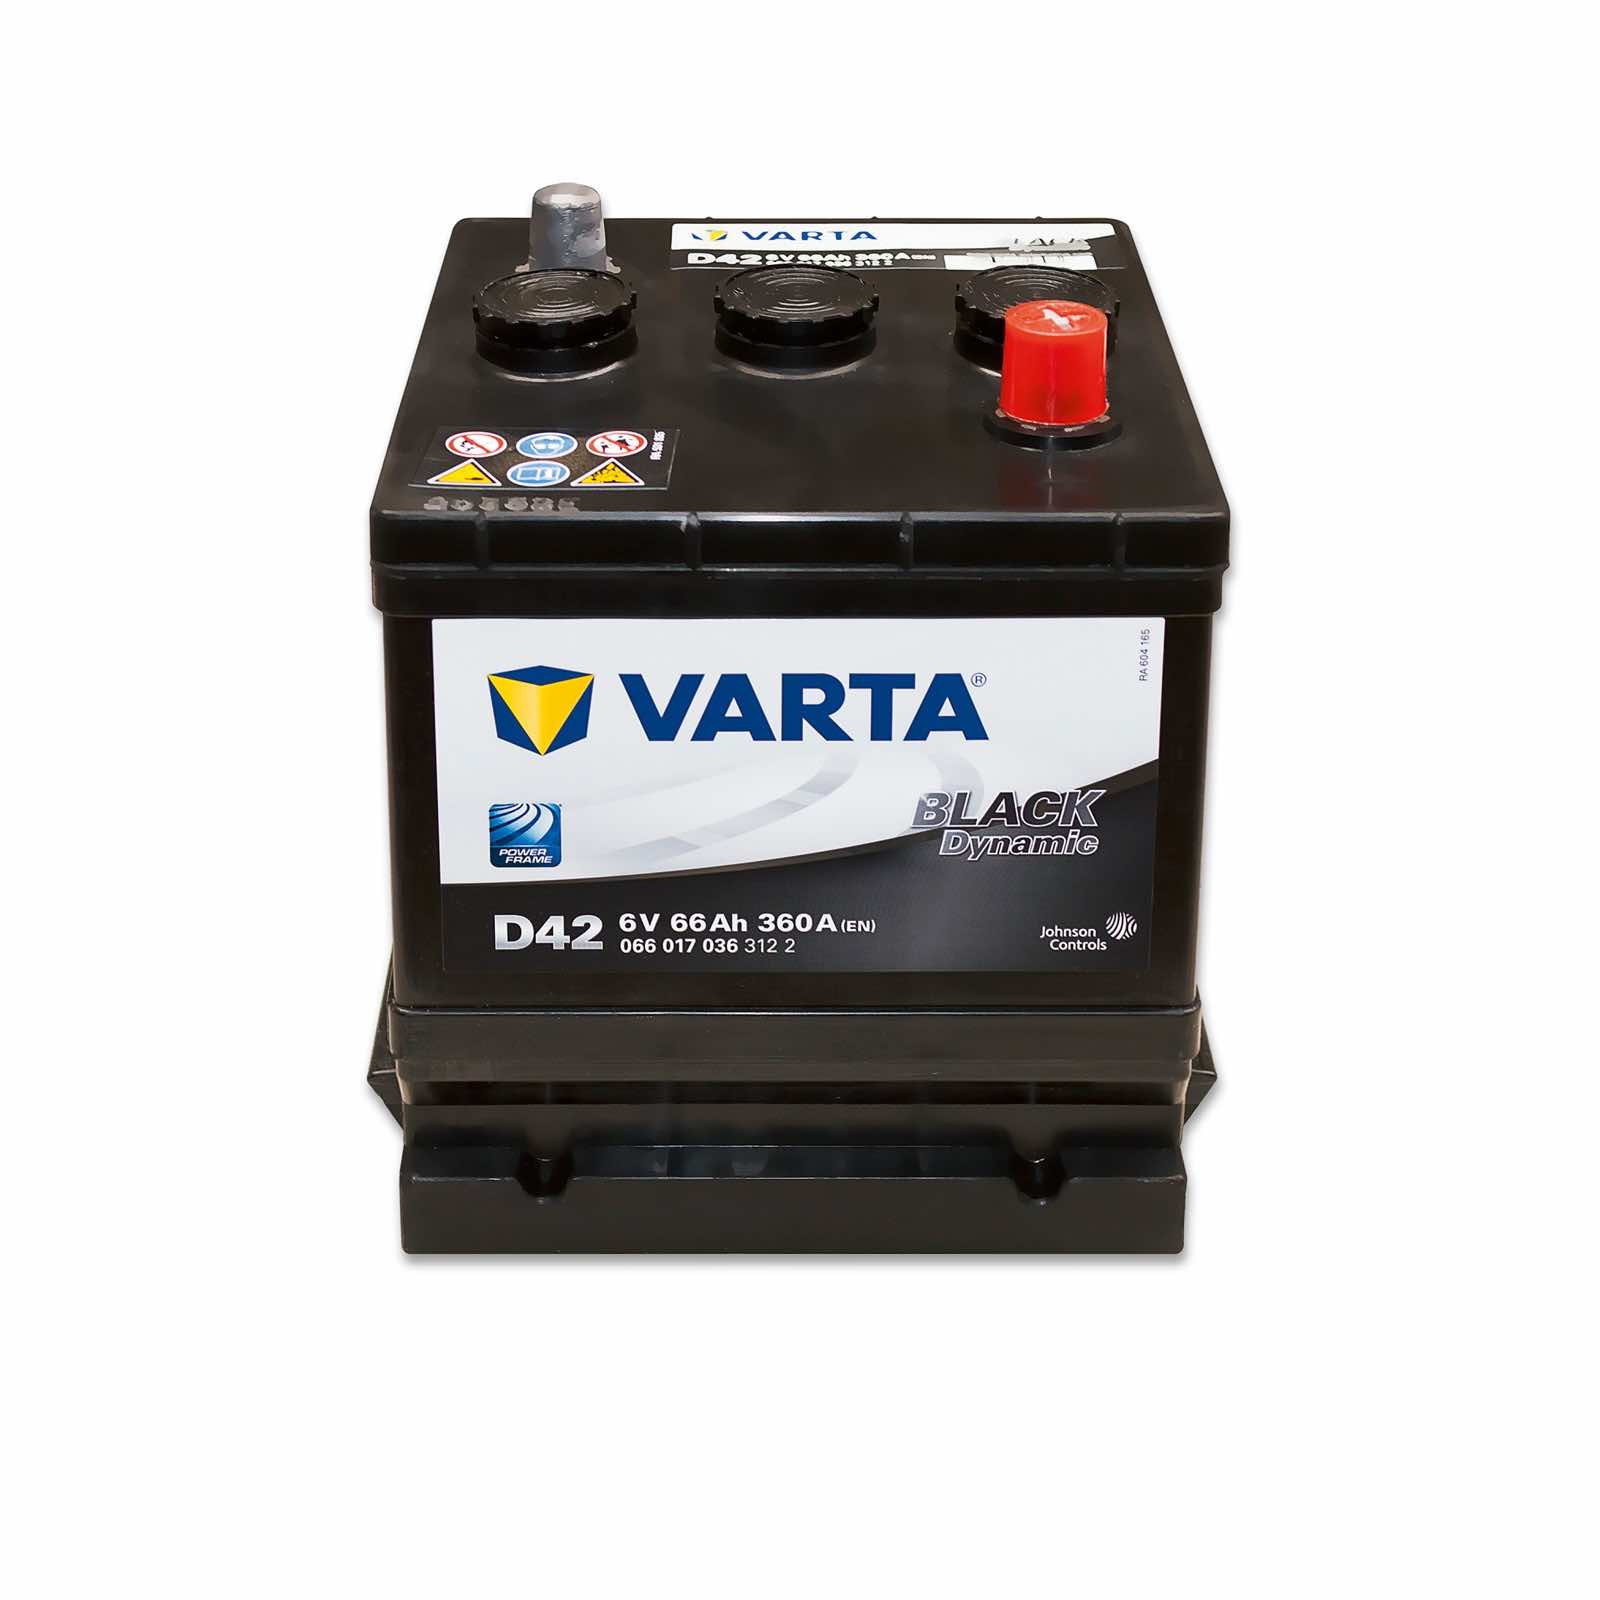 Voltage Auto Accu Varta D42w Black Dynamic 6v 66ah Online Battery